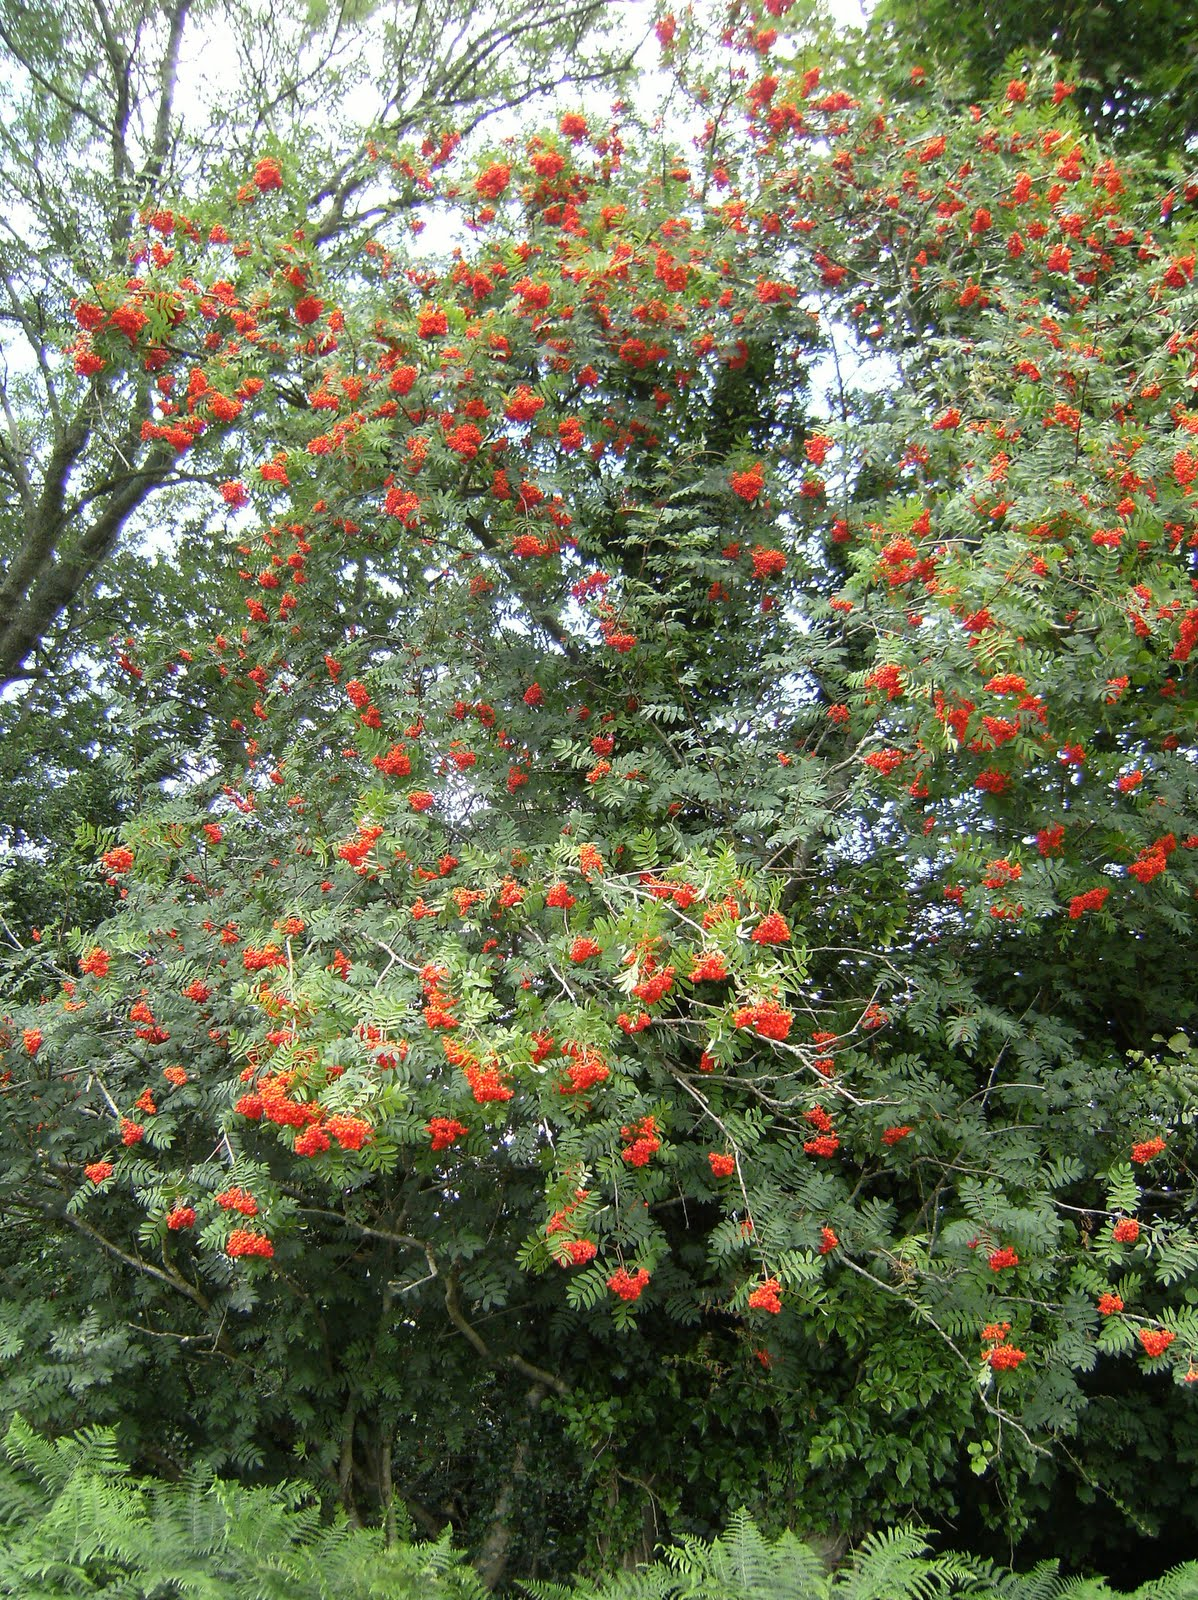 DSCF8809 Rowan tree, near Quell Farm